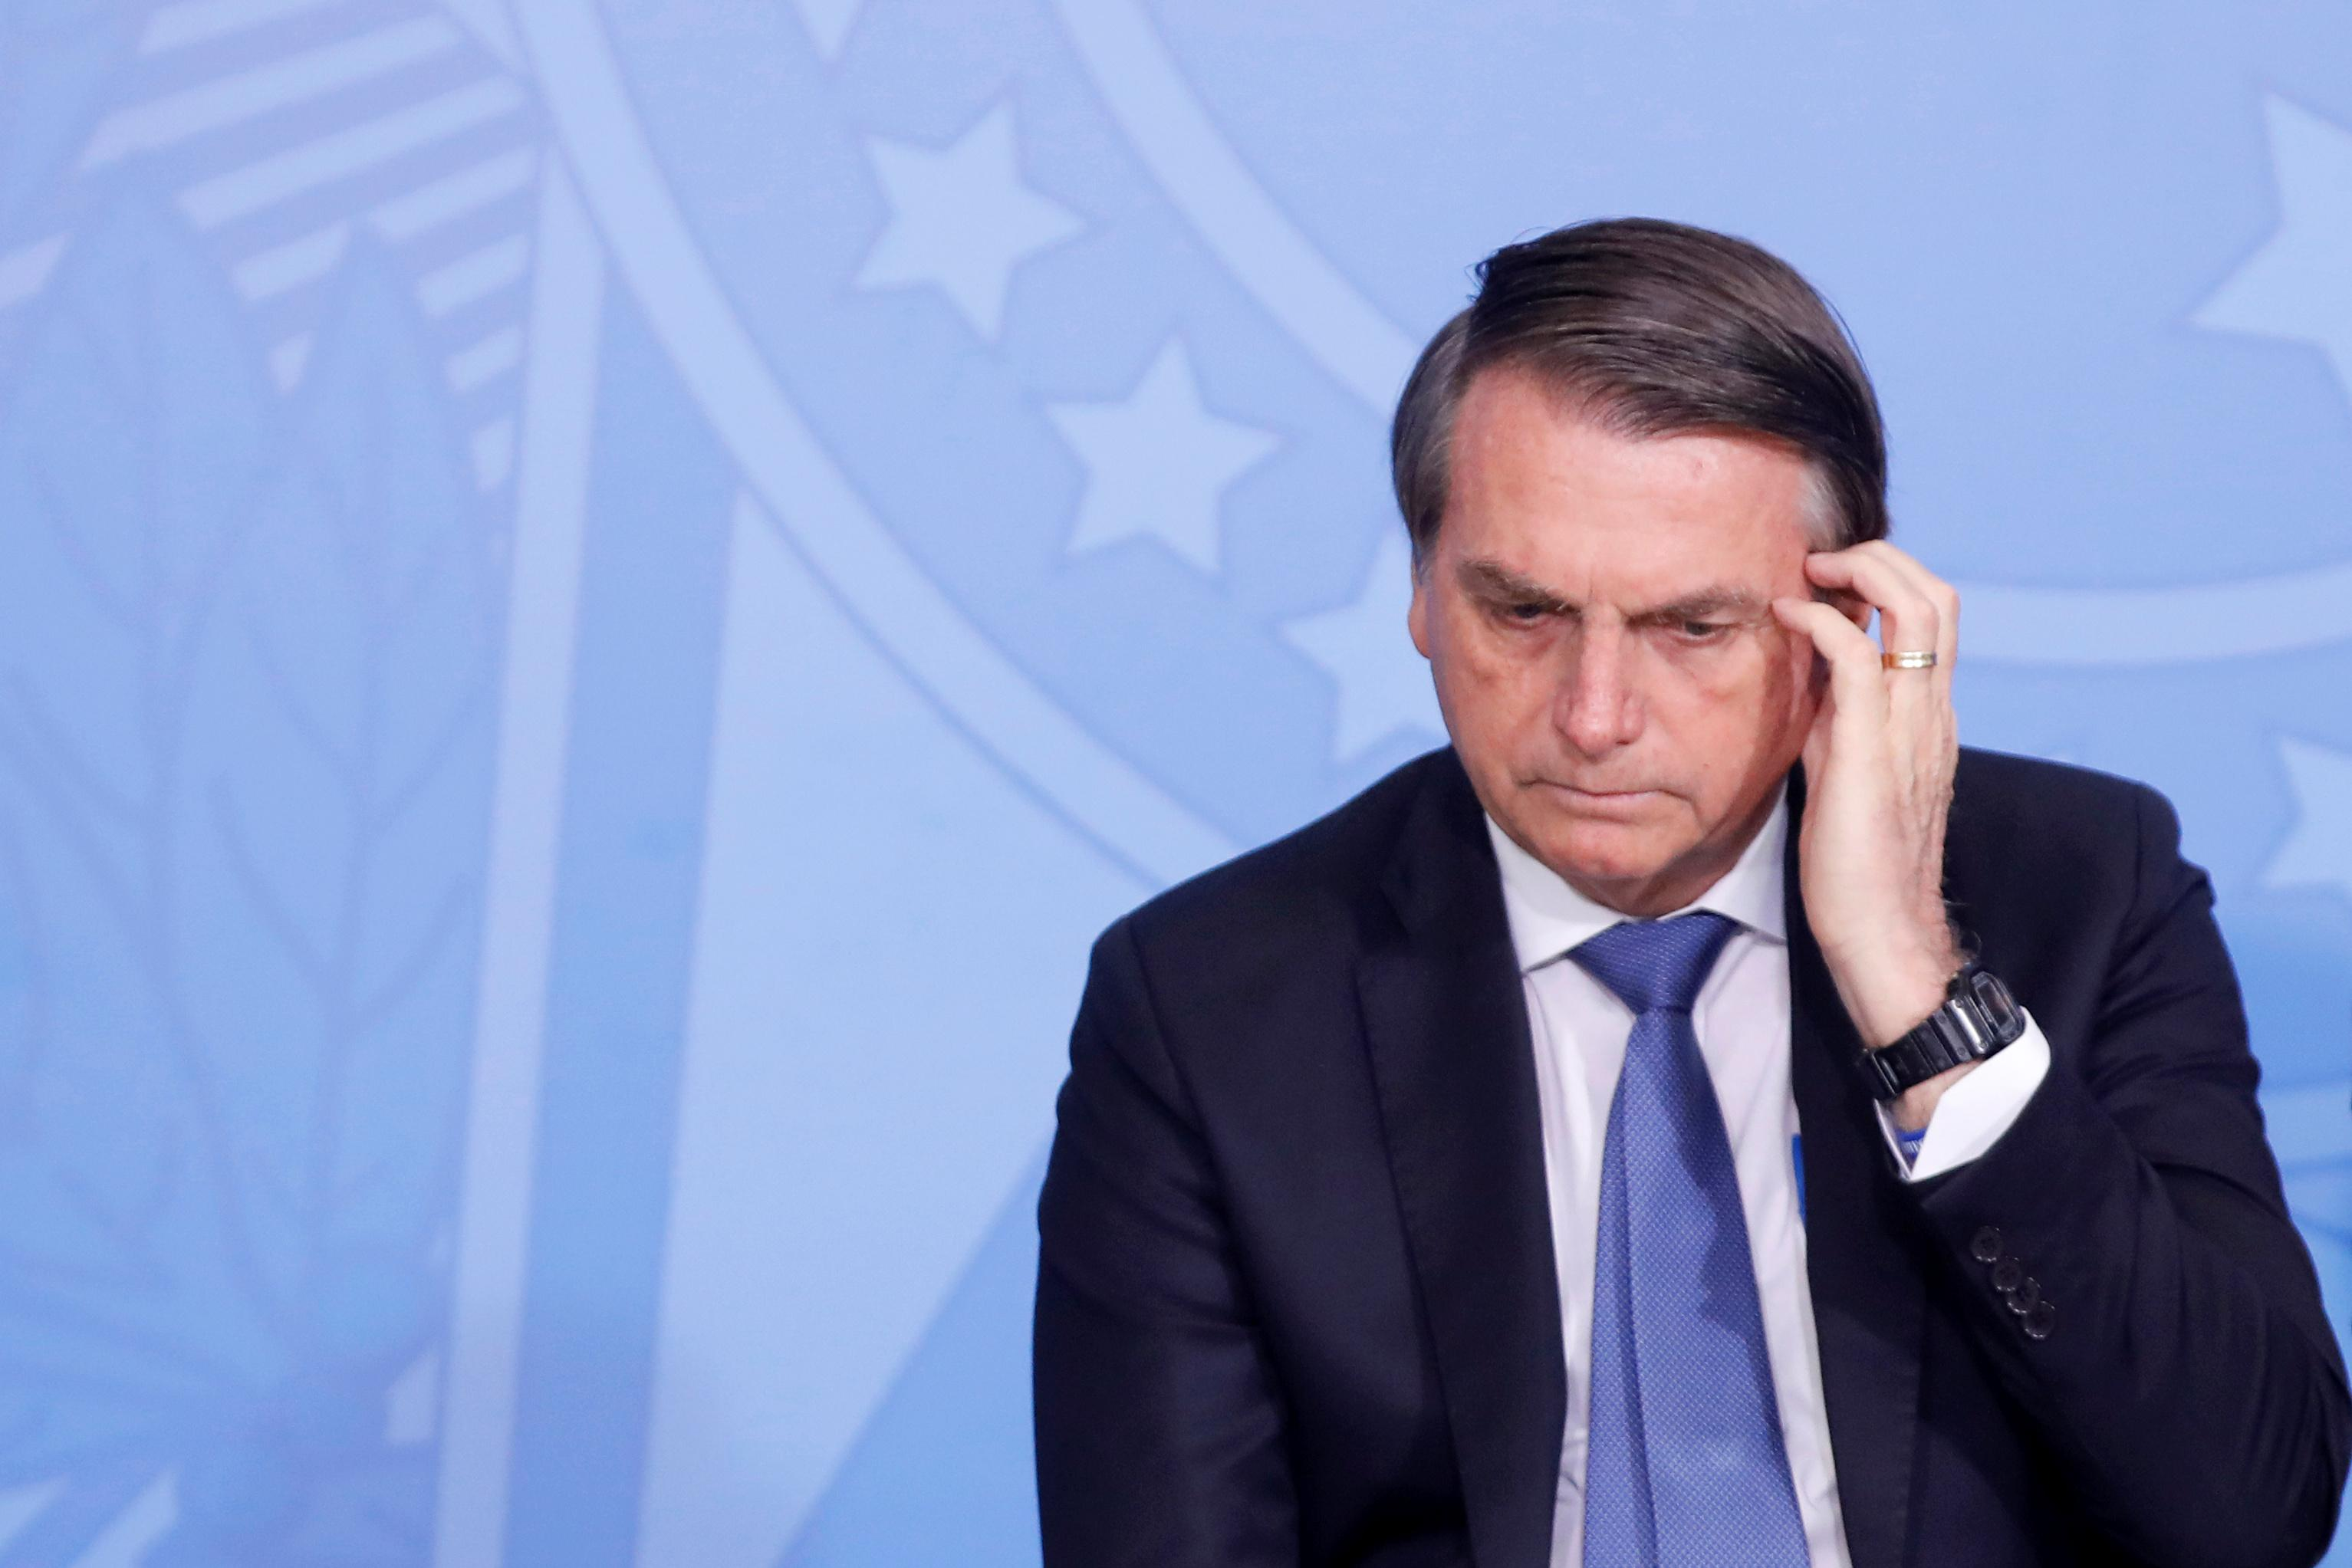 Brazil's Bolsonaro to spend four more days recovering after surgery